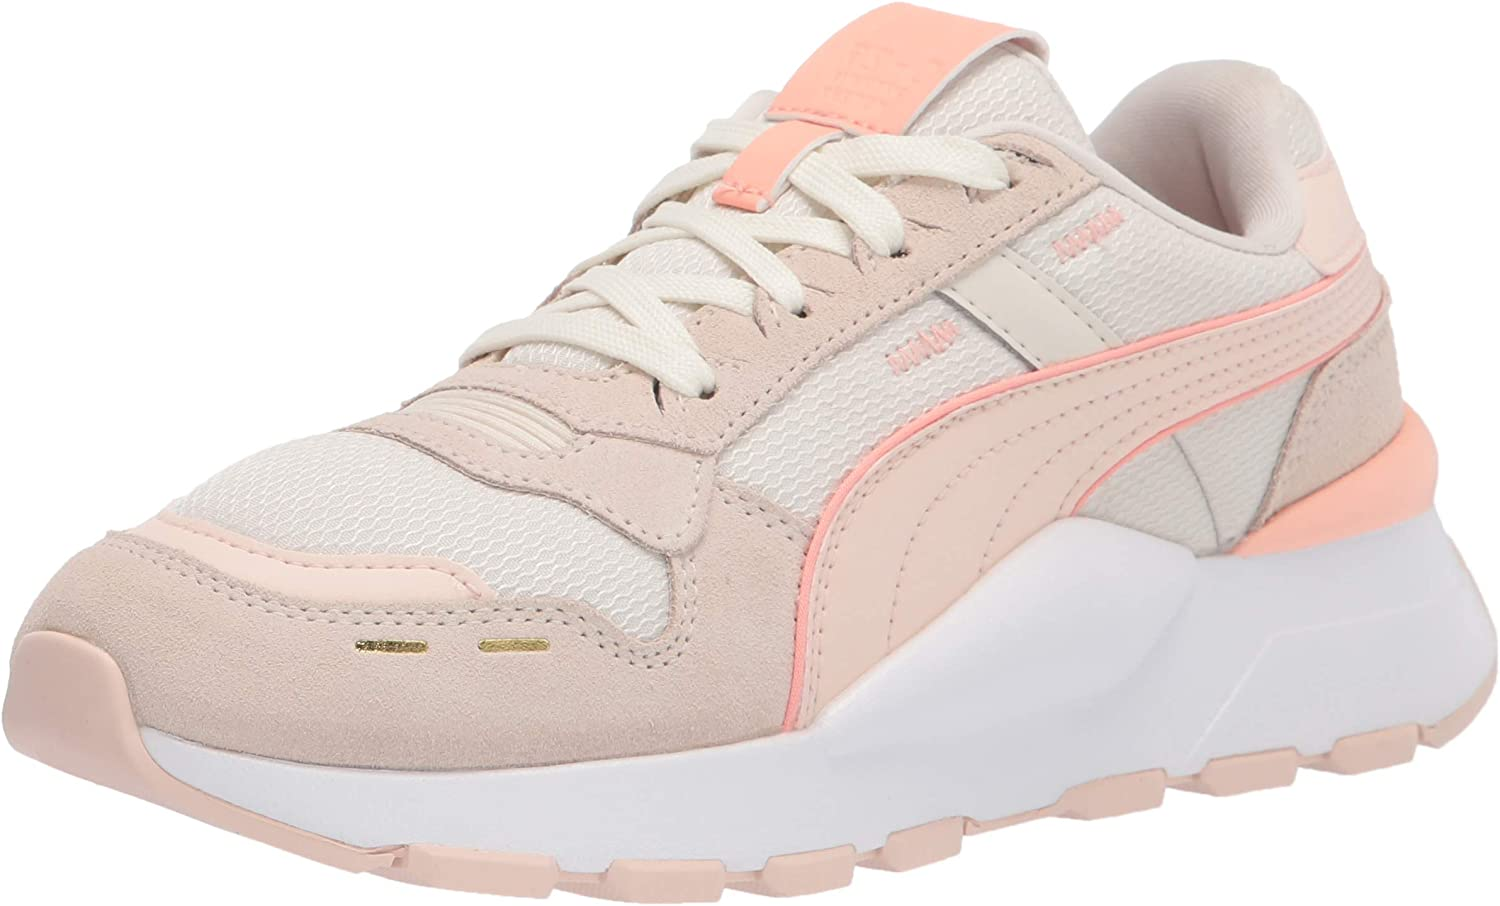 PUMA Outlet sale feature Women's Rs Ranking TOP15 Sneaker 2.0